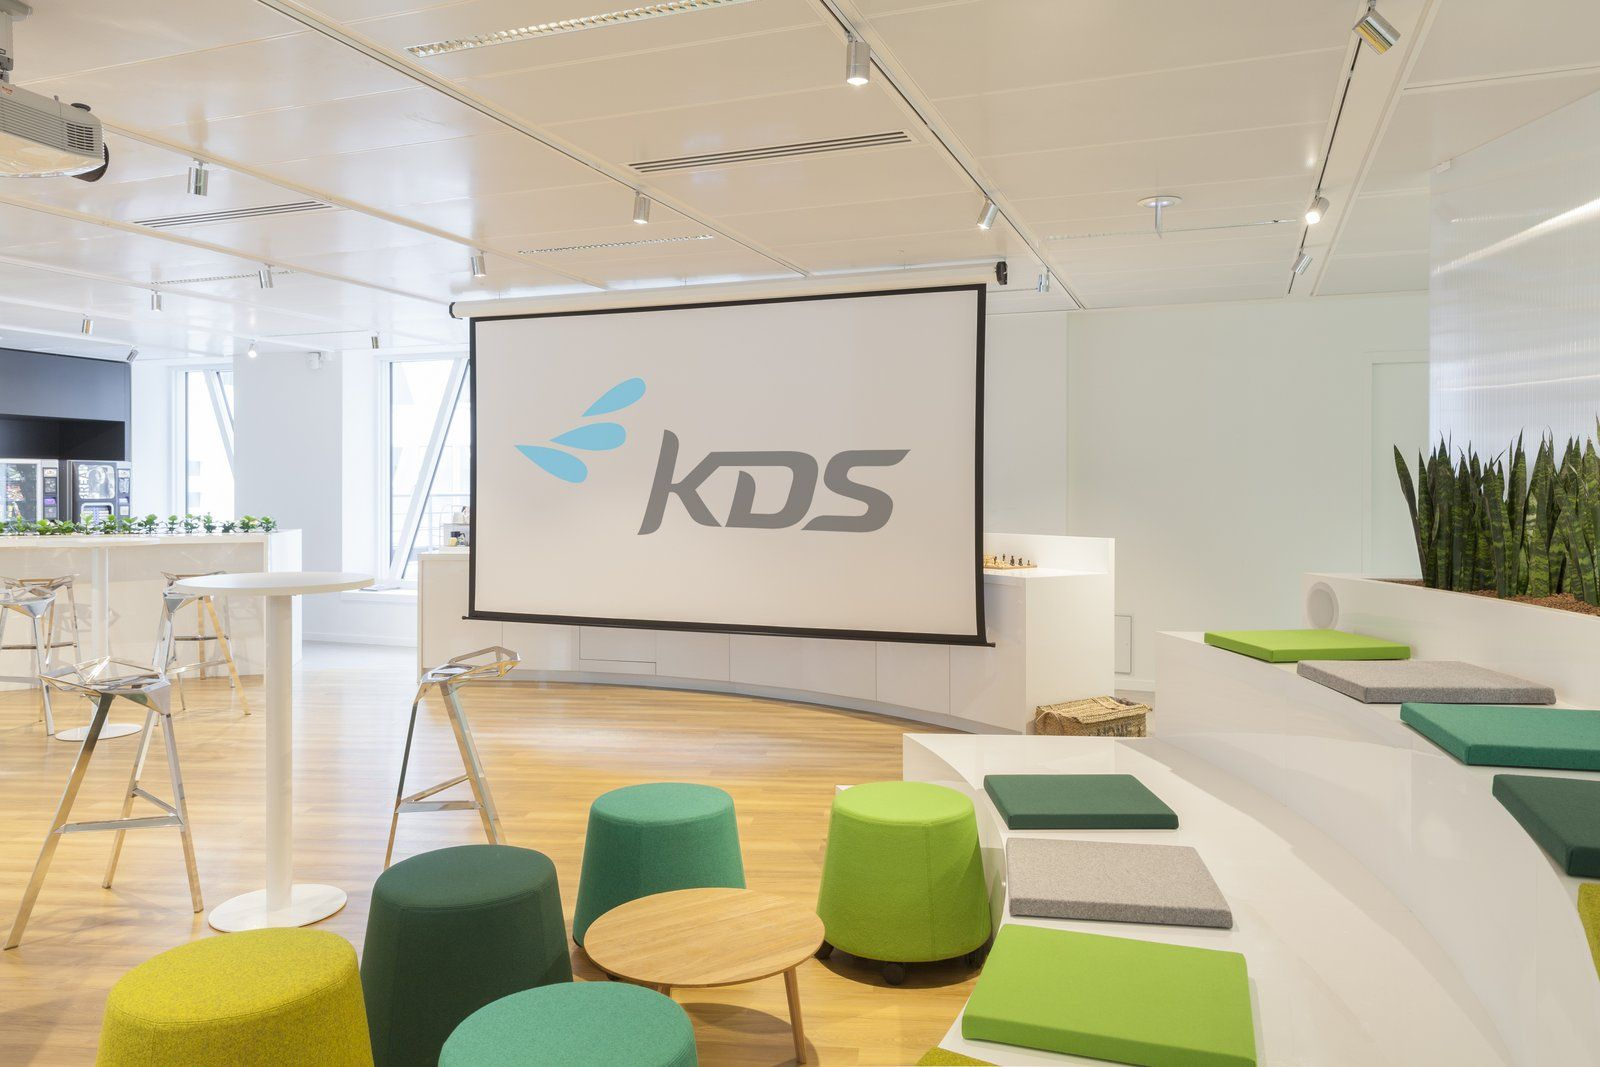 Bureau Professionnel Zen Kds Office Design 11 Interior Corporate Branding